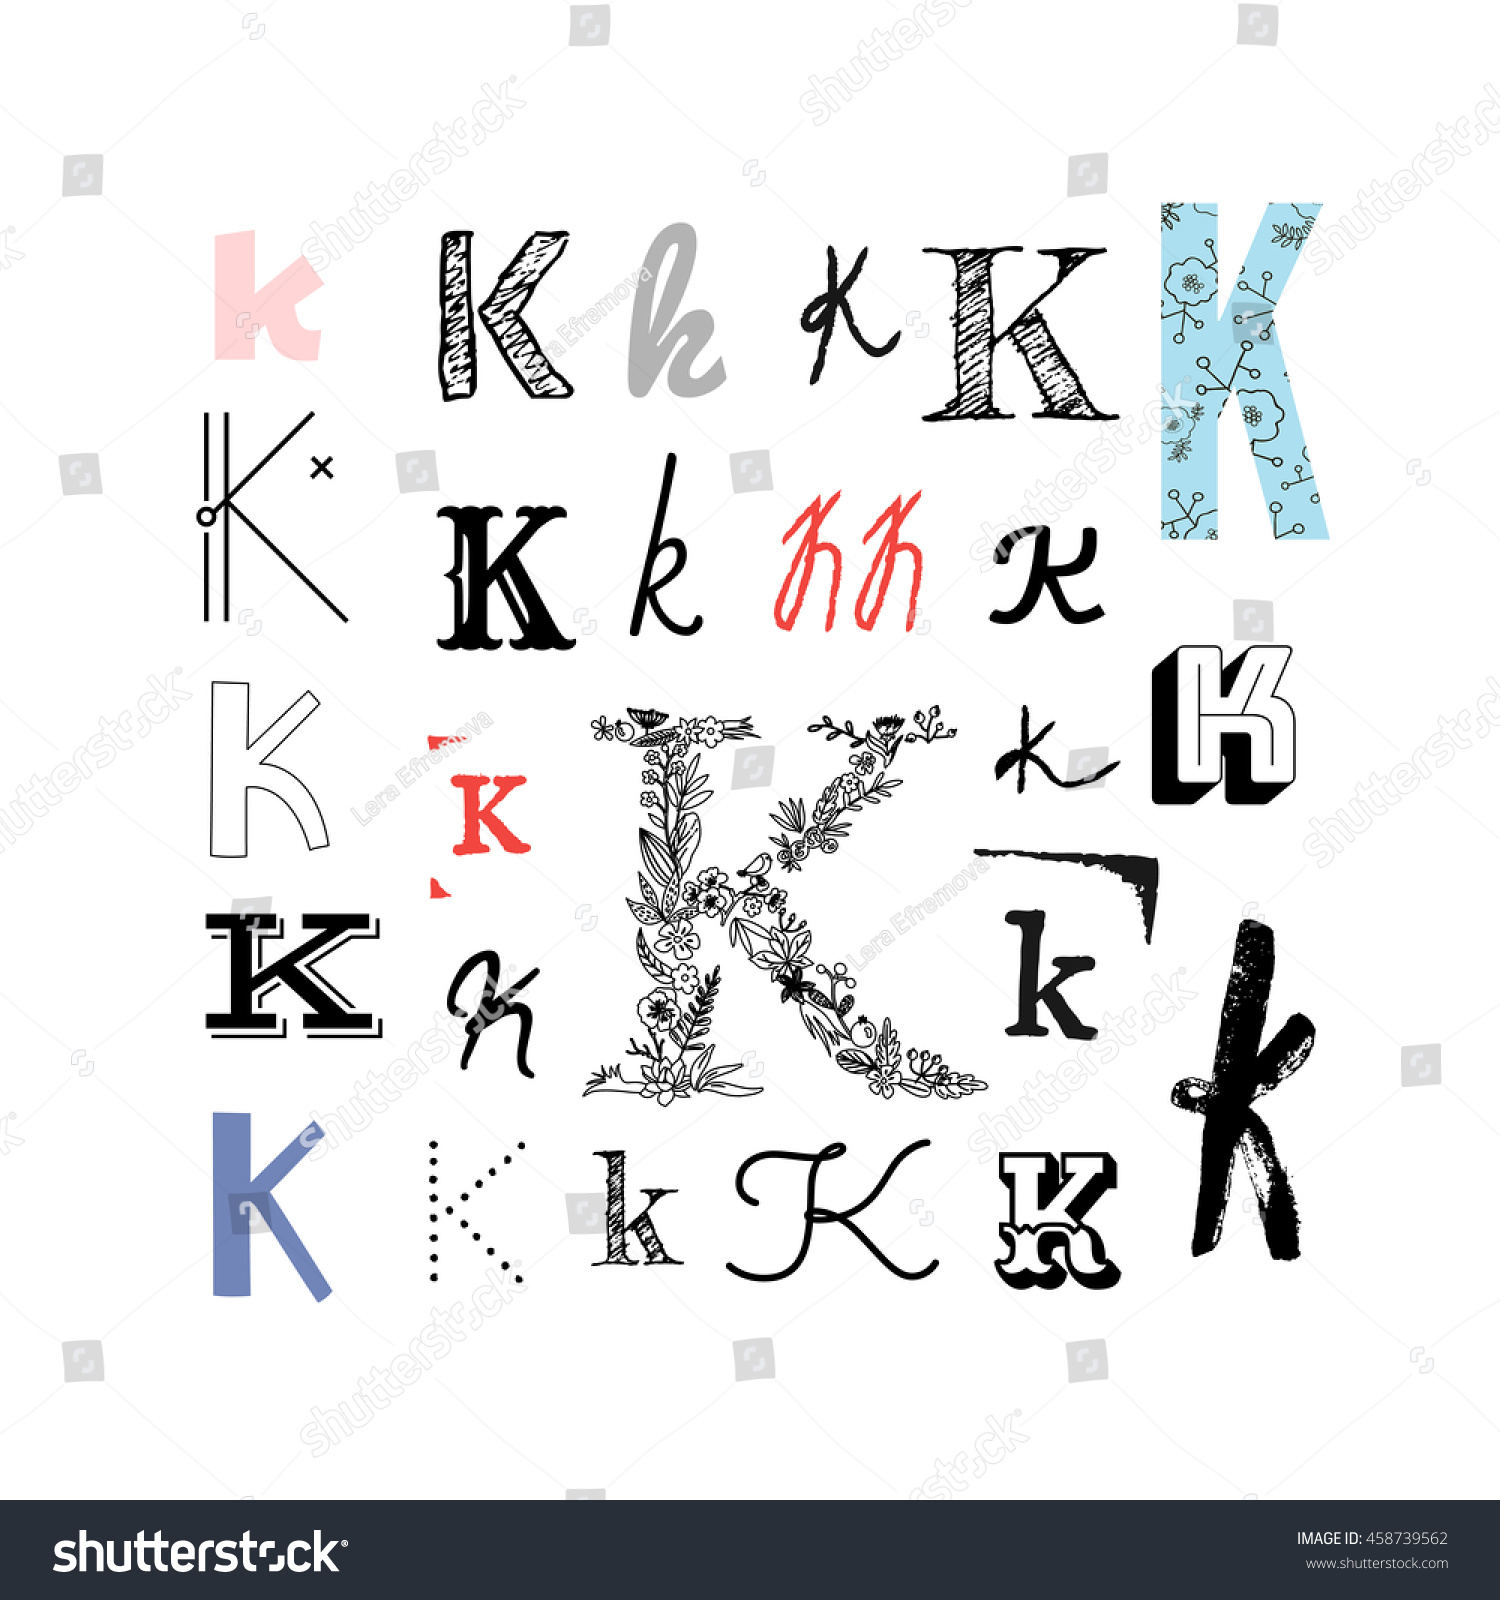 set letter k different style collection stock vector (royalty free